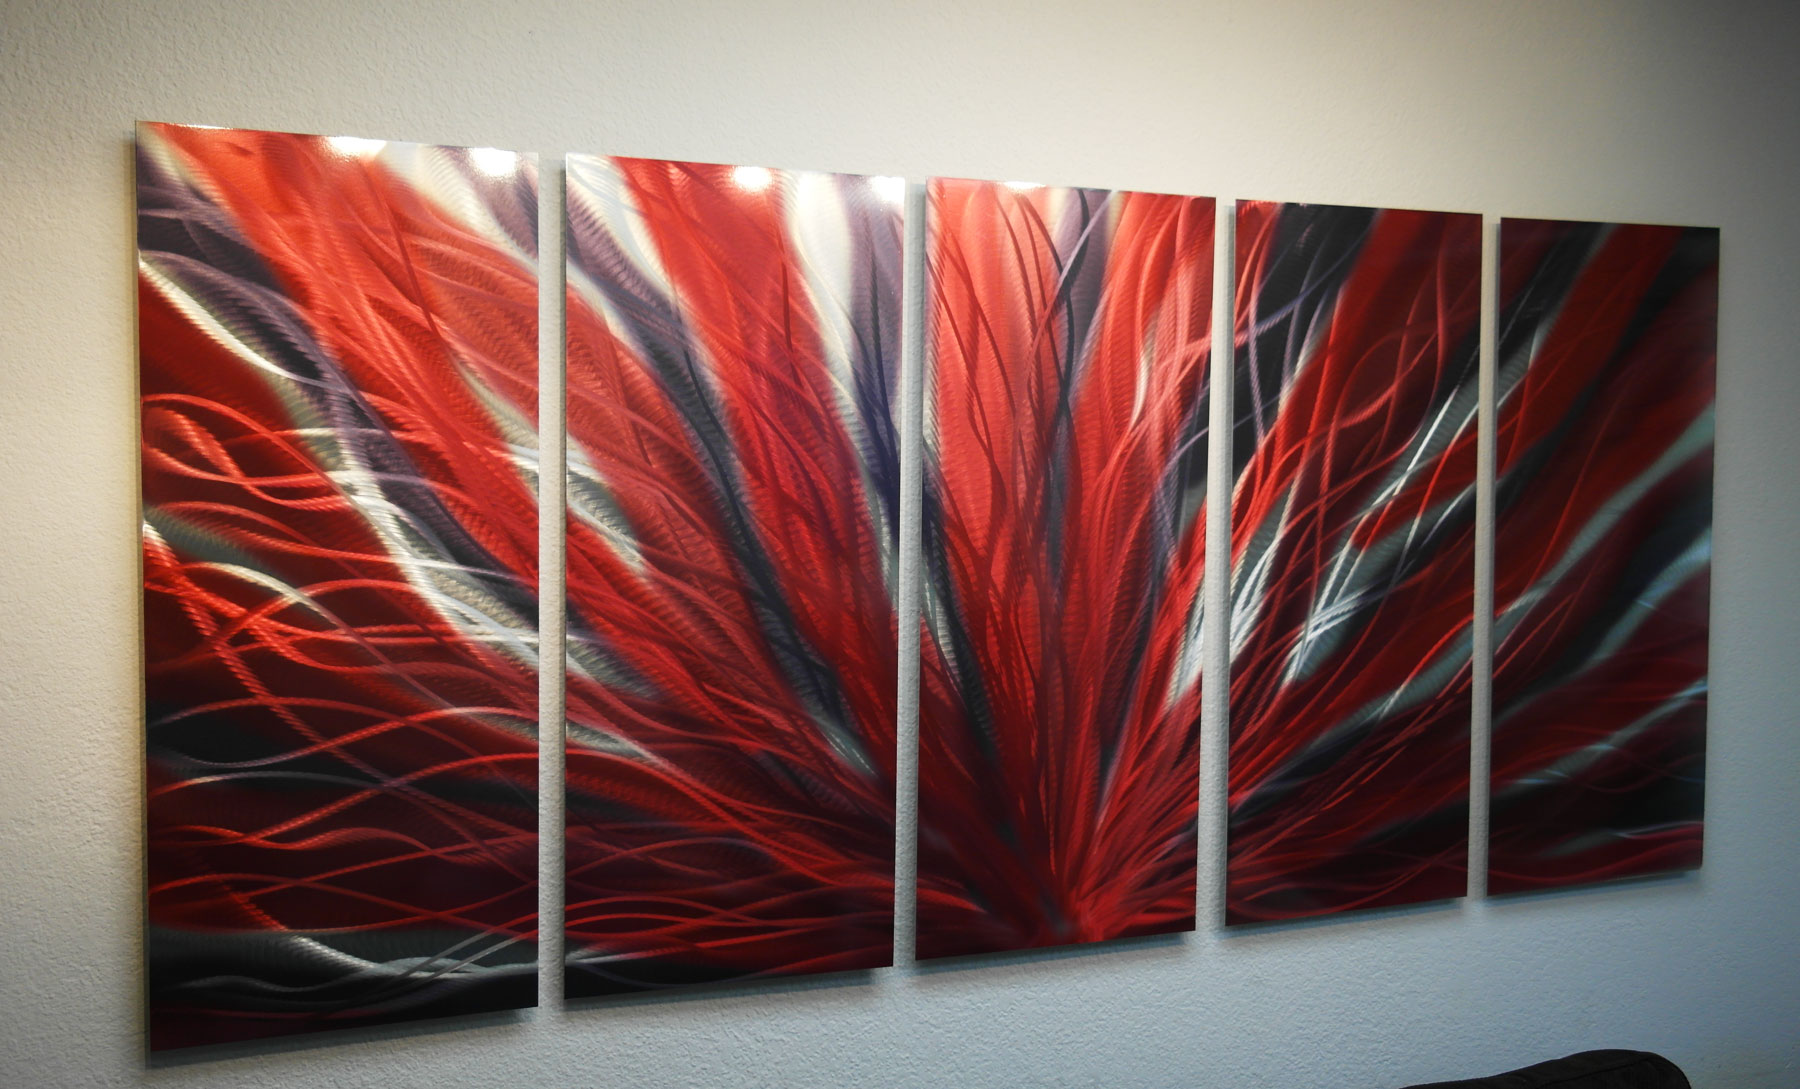 Red Metal Wall Decor: Large Radiance Red And Black- Metal Wall Art Abstract